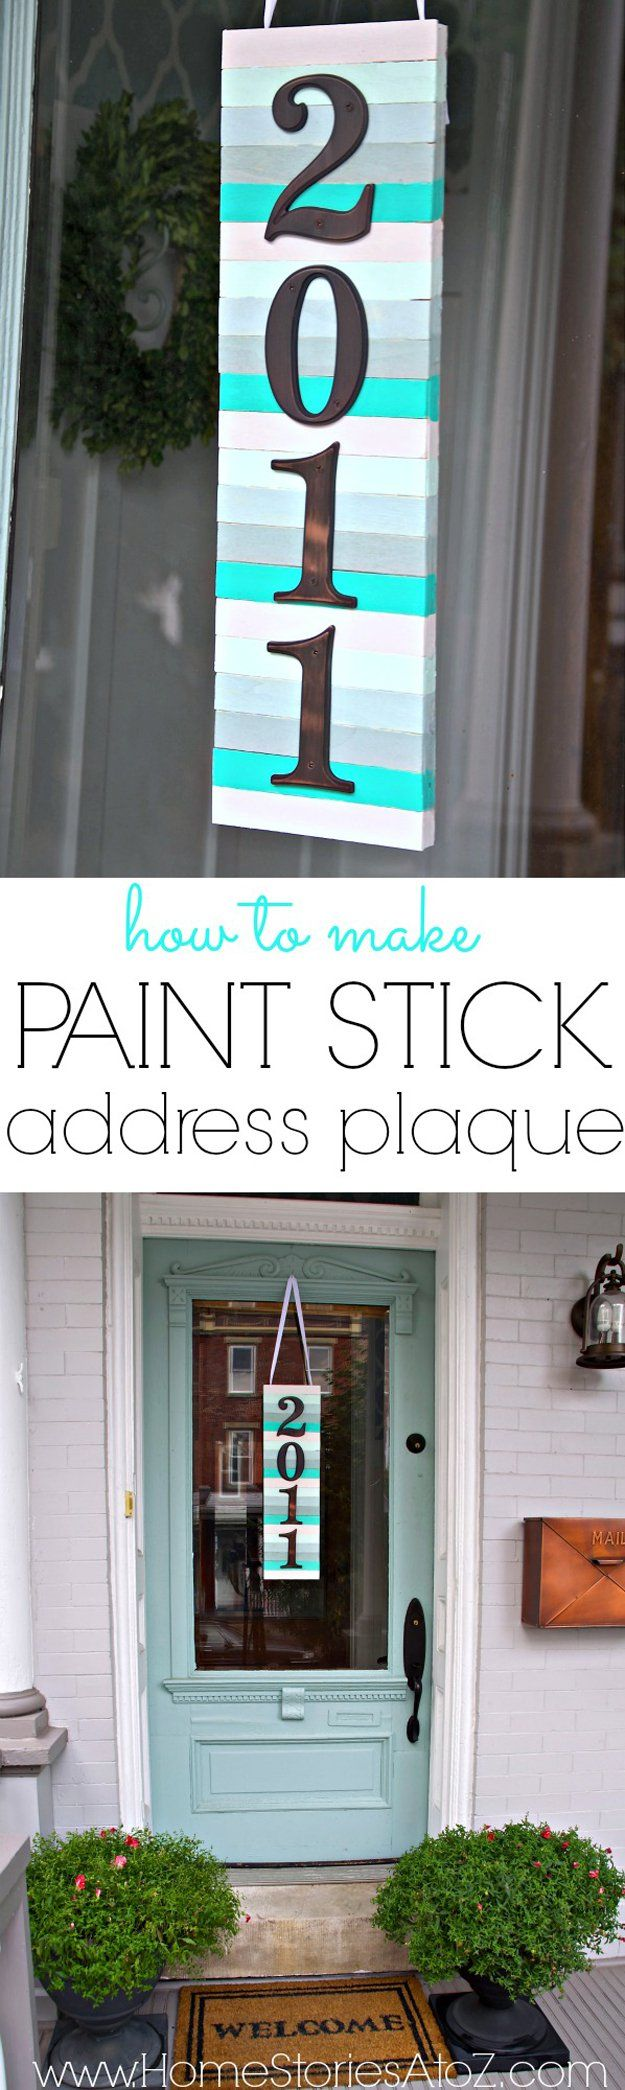 Popsicle stick church craft - Paint Stick Crafts